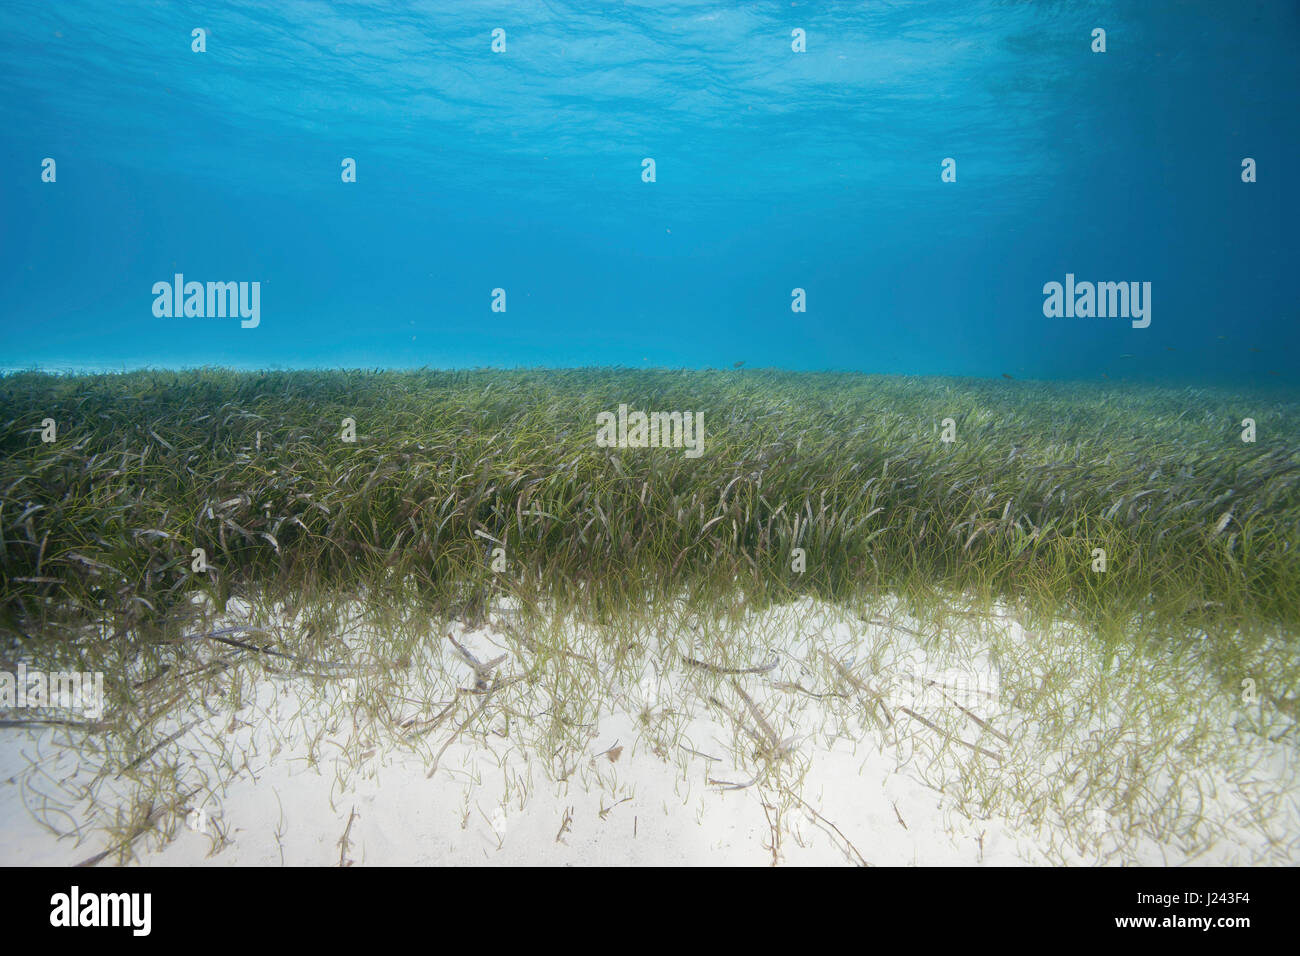 Underwater view of seagrass bed Stock Photo